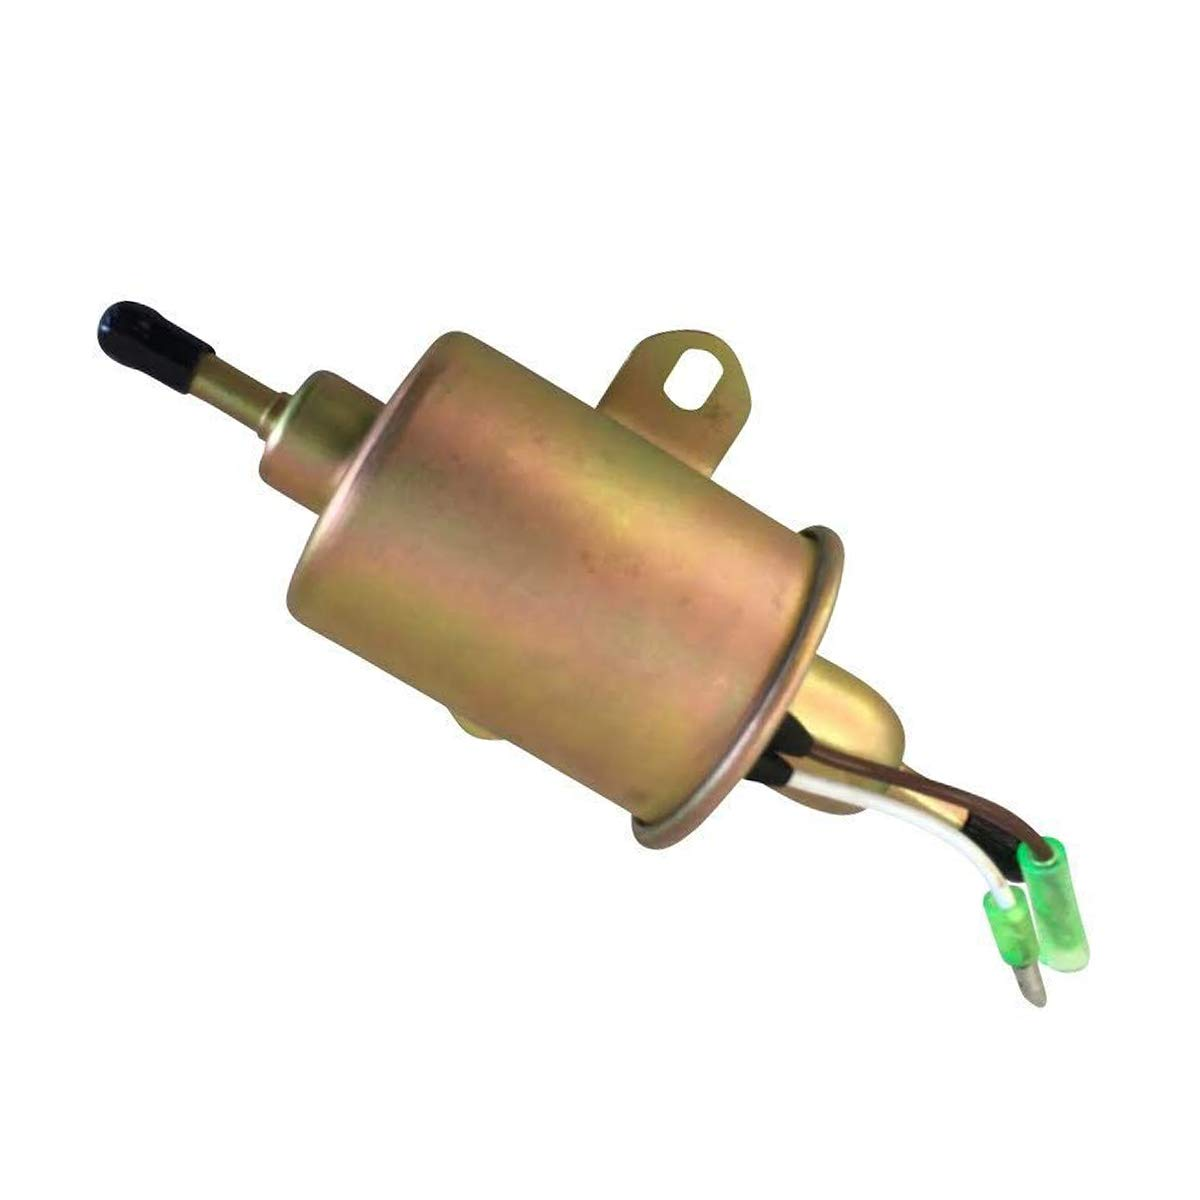 Fuel Pump for Polaris Ranger 400 500 Replaces# 4011545 4011492 4010658 4170020